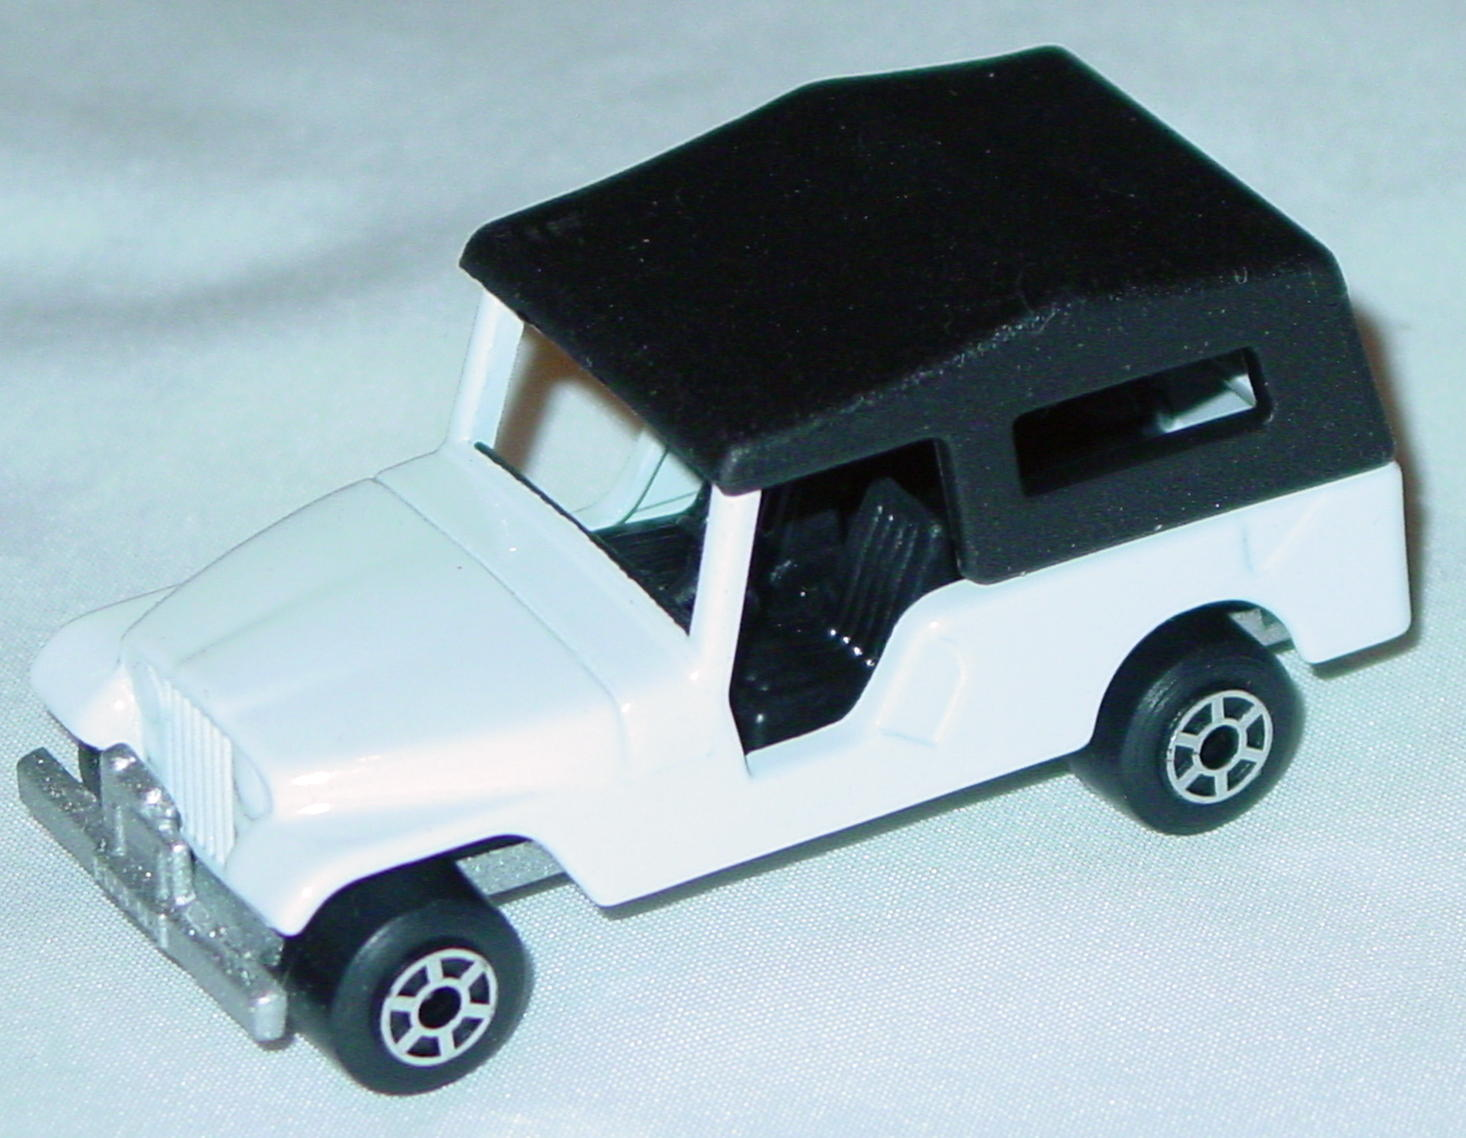 Hungarian 53 C 13 - CJ6 Jeep White black interior black roof met sil-grey 5-spoke